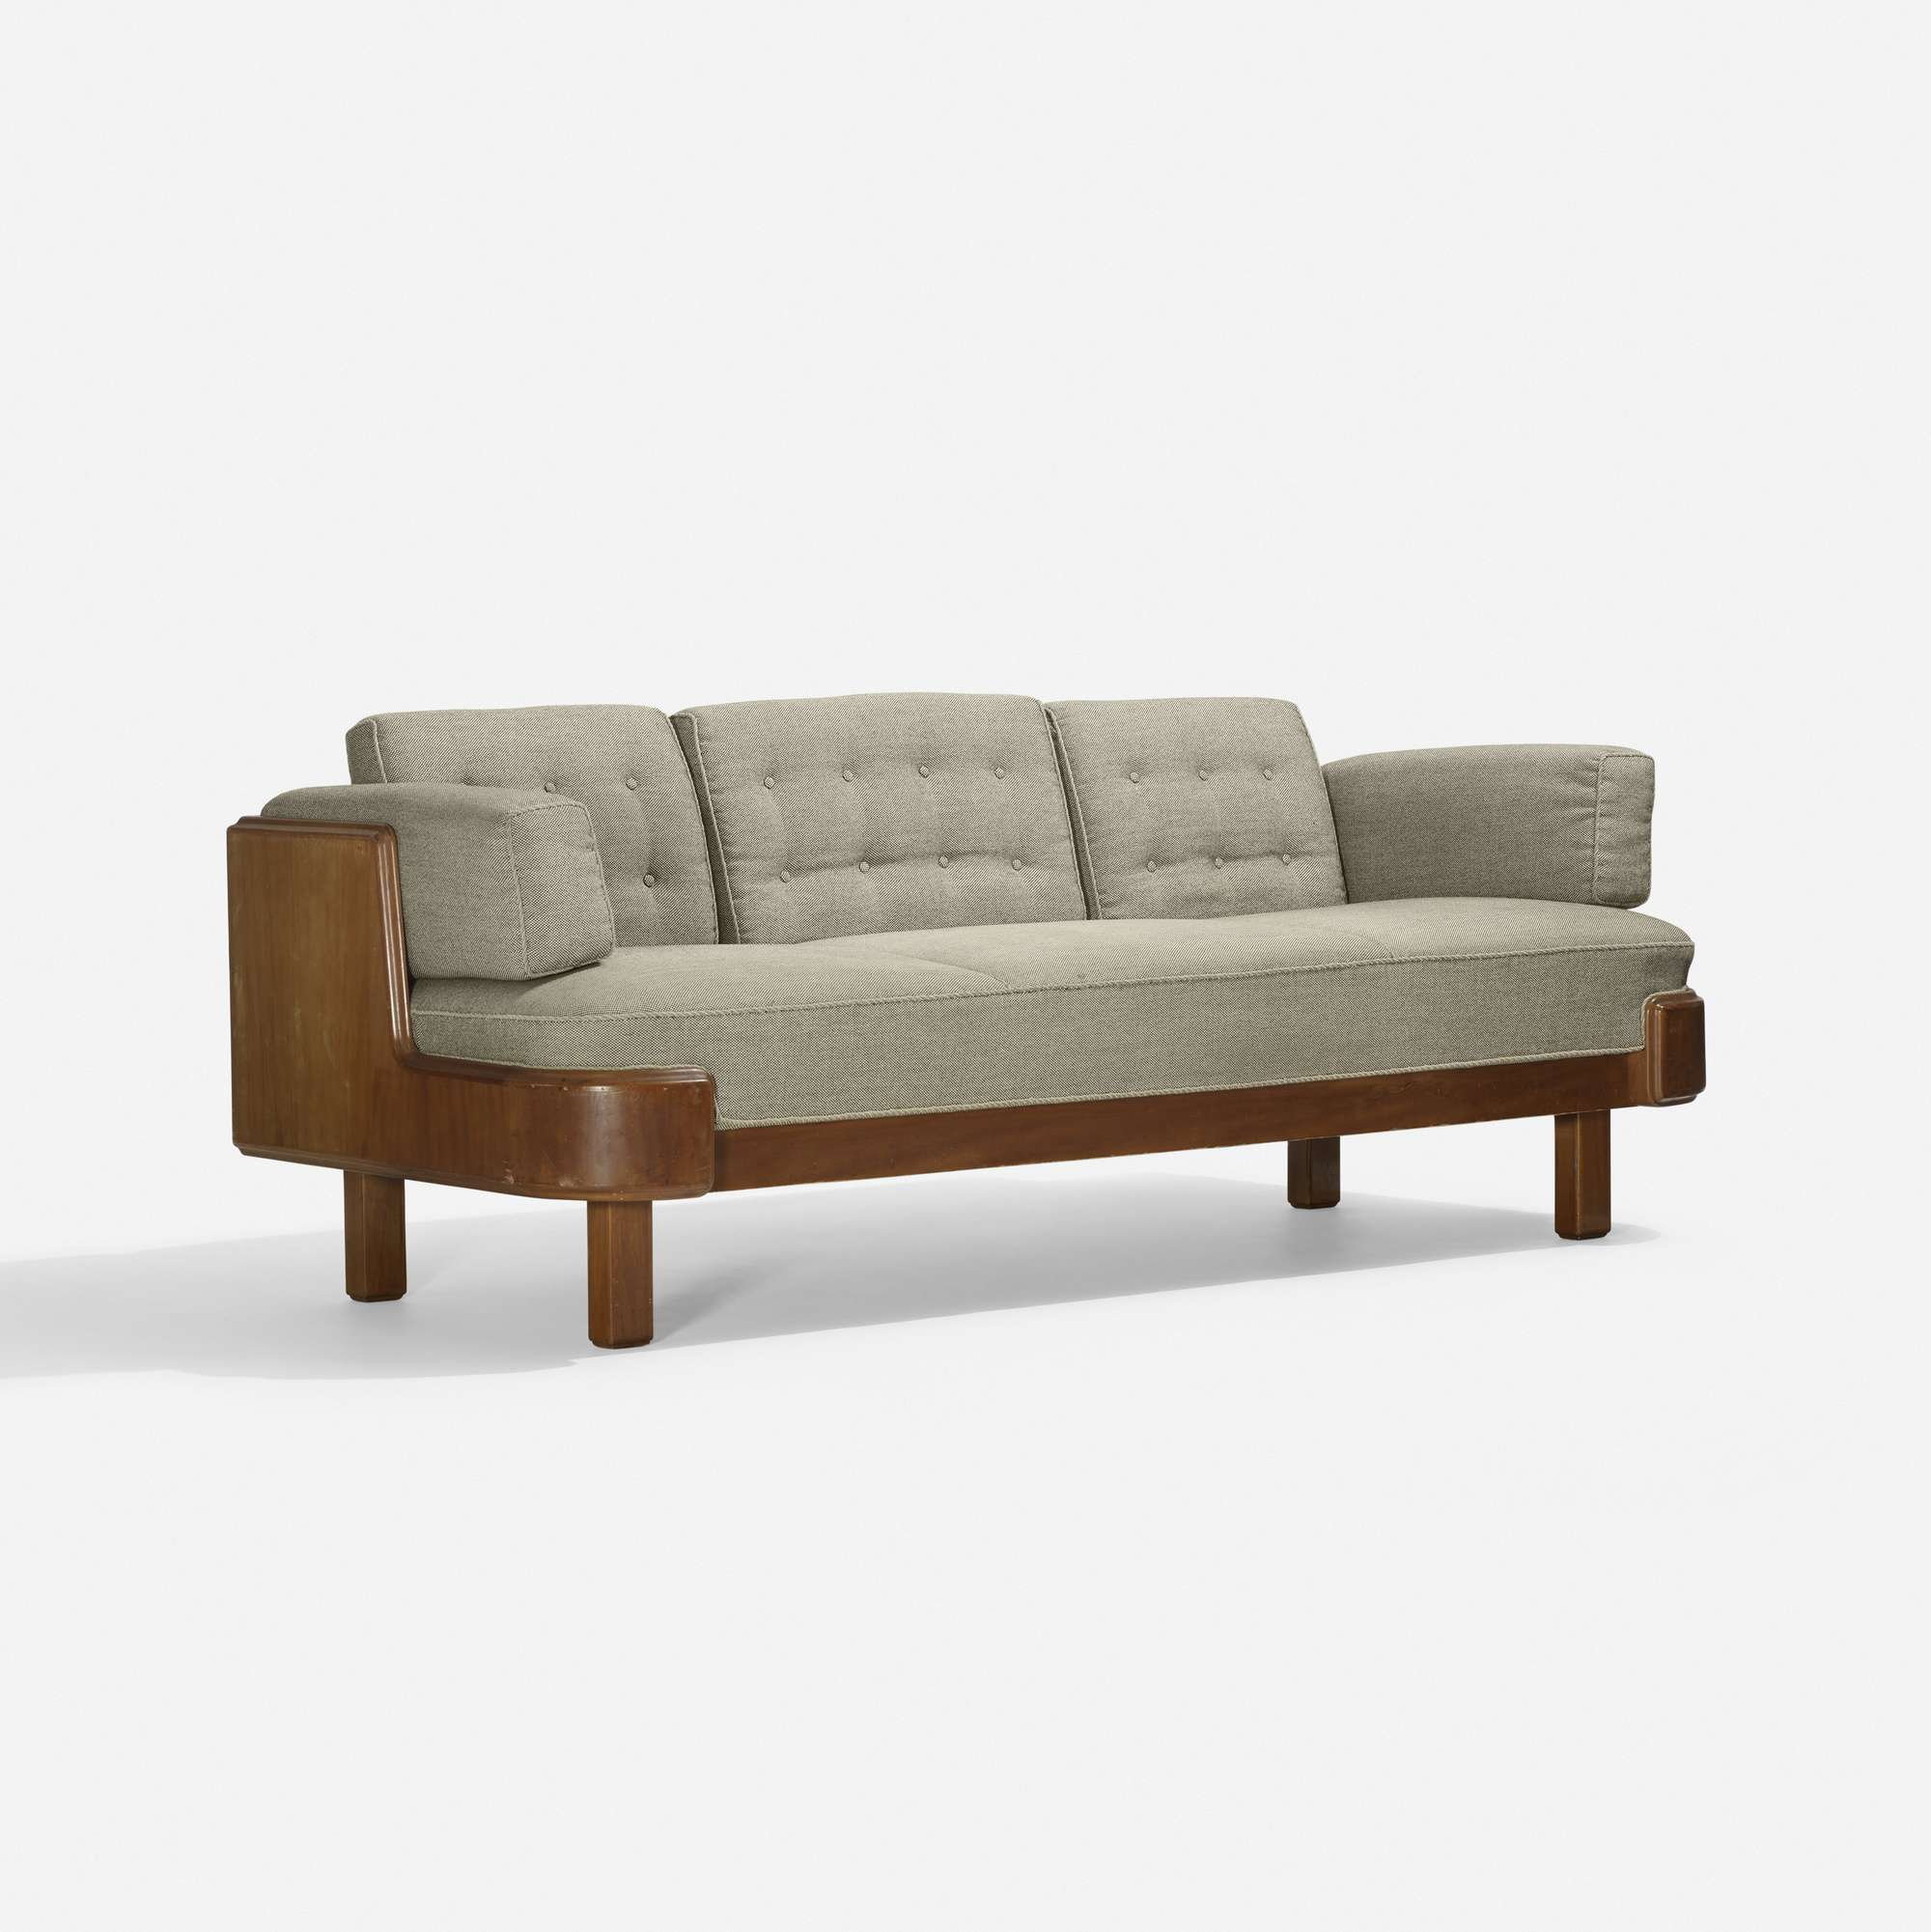 174 Frits Schlegel Custom Sofa 1 Of 3